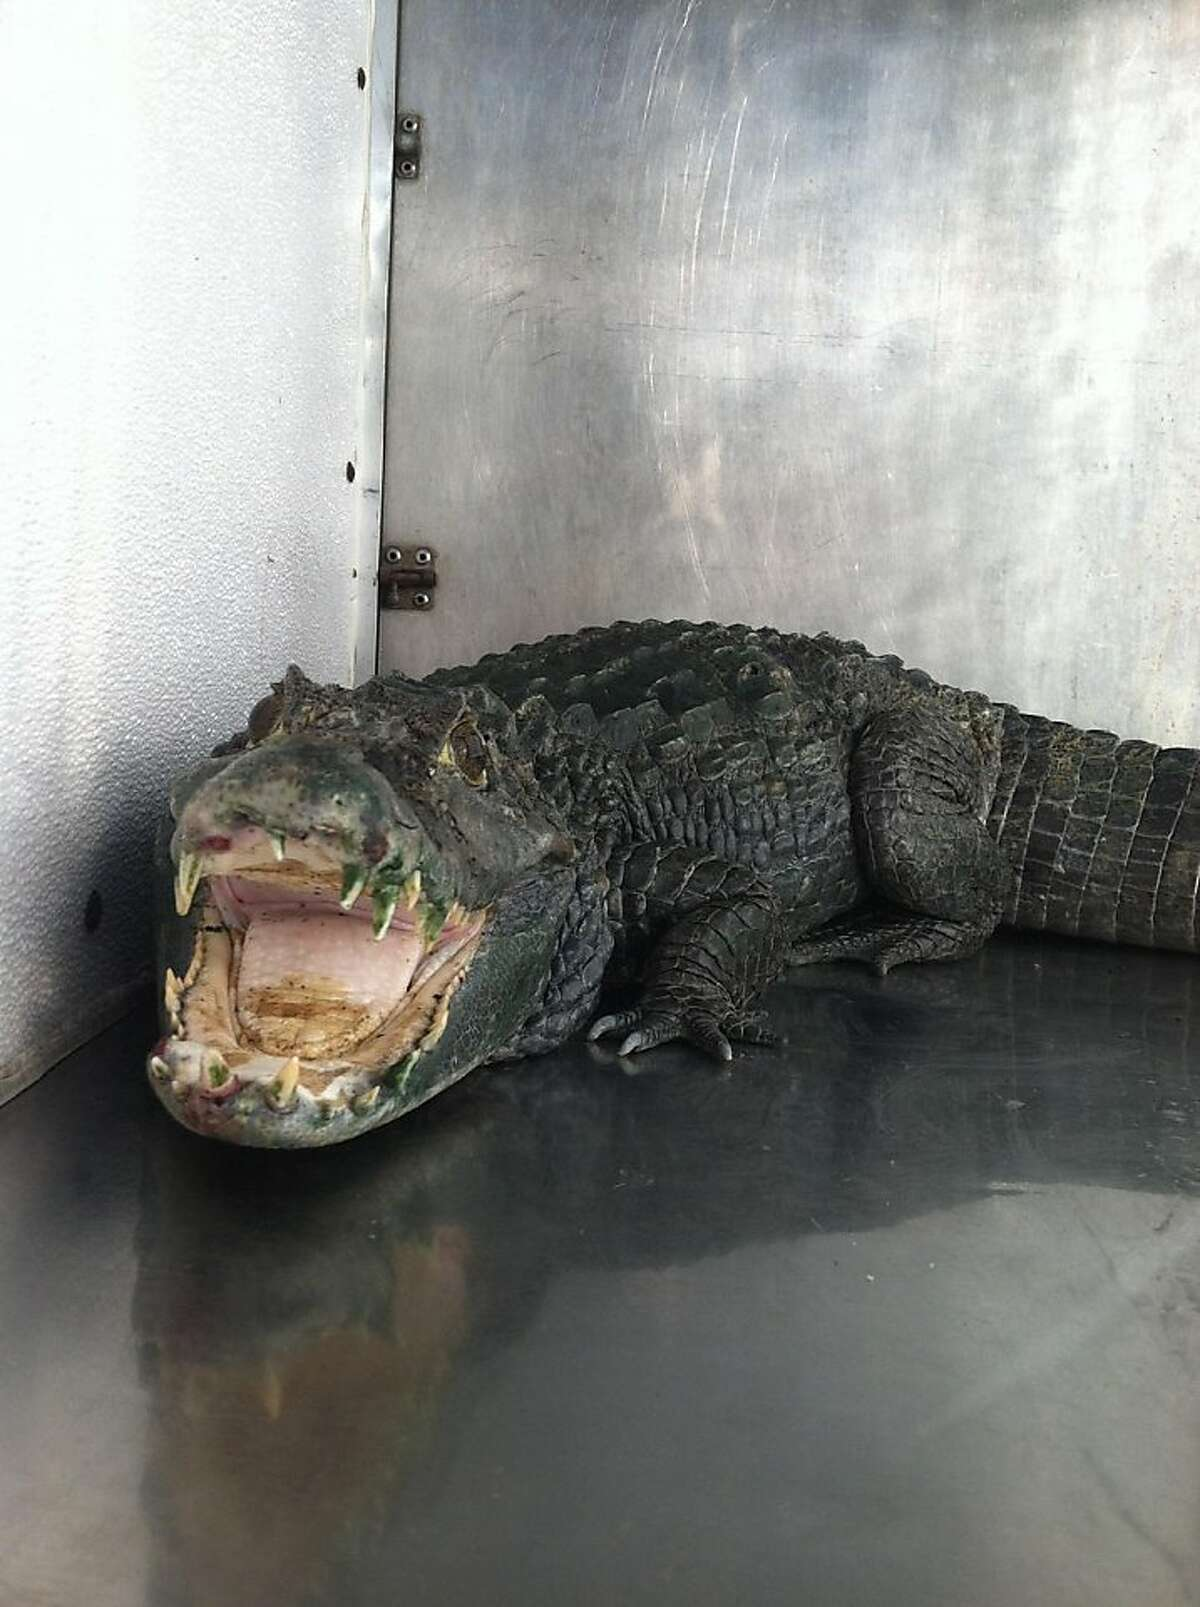 Mr. Teeth, the alligator found guarding a marijuana stash in Castro Valley.